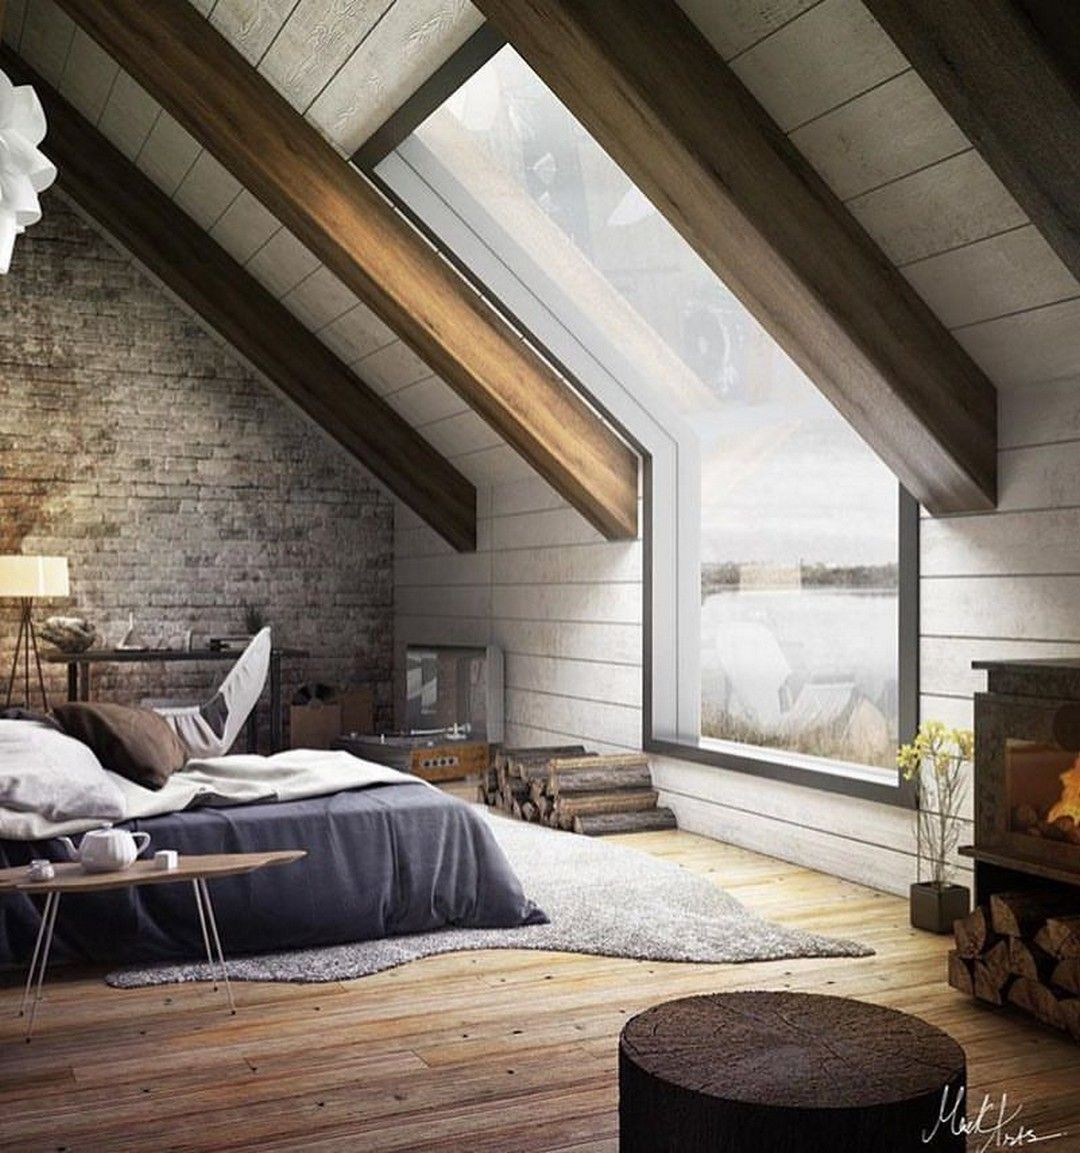 Awesome 43 Amazing Attic Bedroom Decor Ideas And Projects More At Https Decoratrend Com 2018 06 02 43 Attic Bedroom Decor Attic Bedroom Designs Attic Rooms